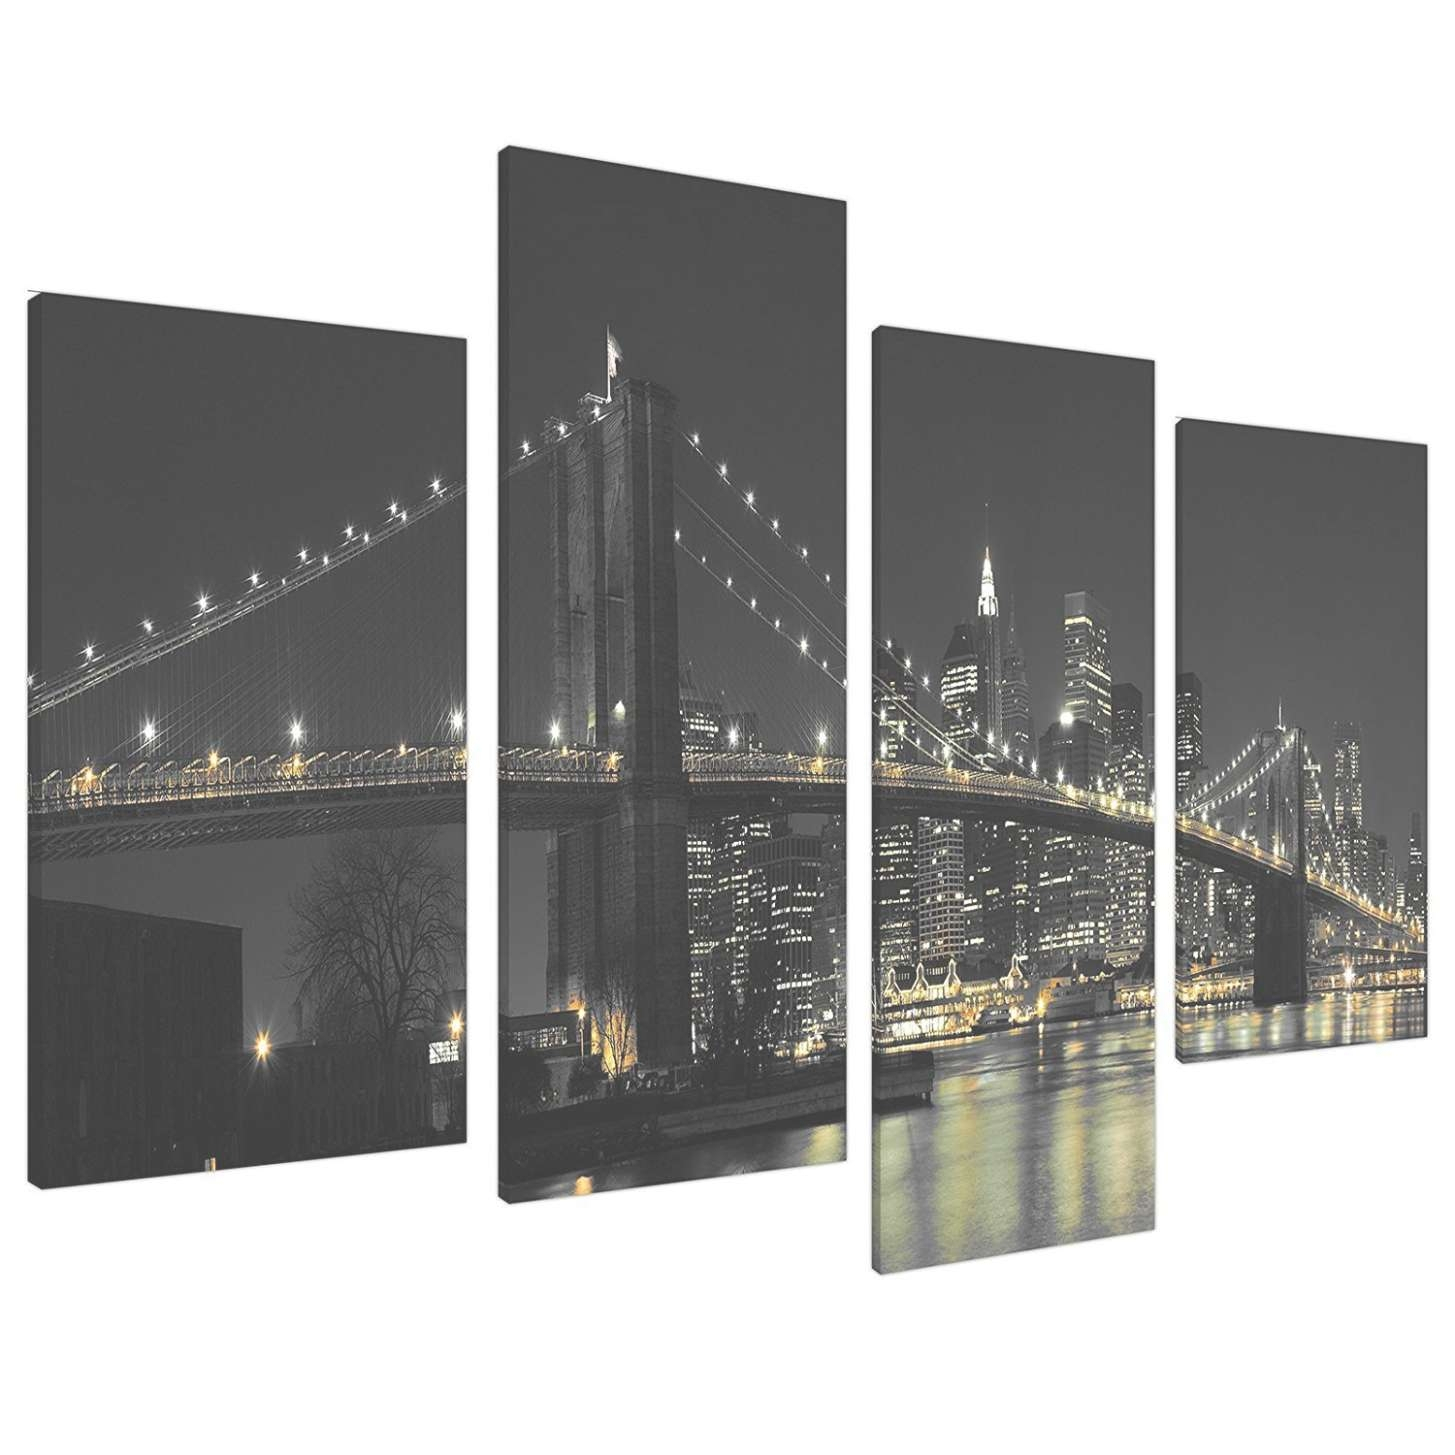 New York City Wall Art Attractive 45 Ideas Of For 13 Throughout Latest Wonderful World Wall Decor By Latitude Run (Gallery 9 of 20)